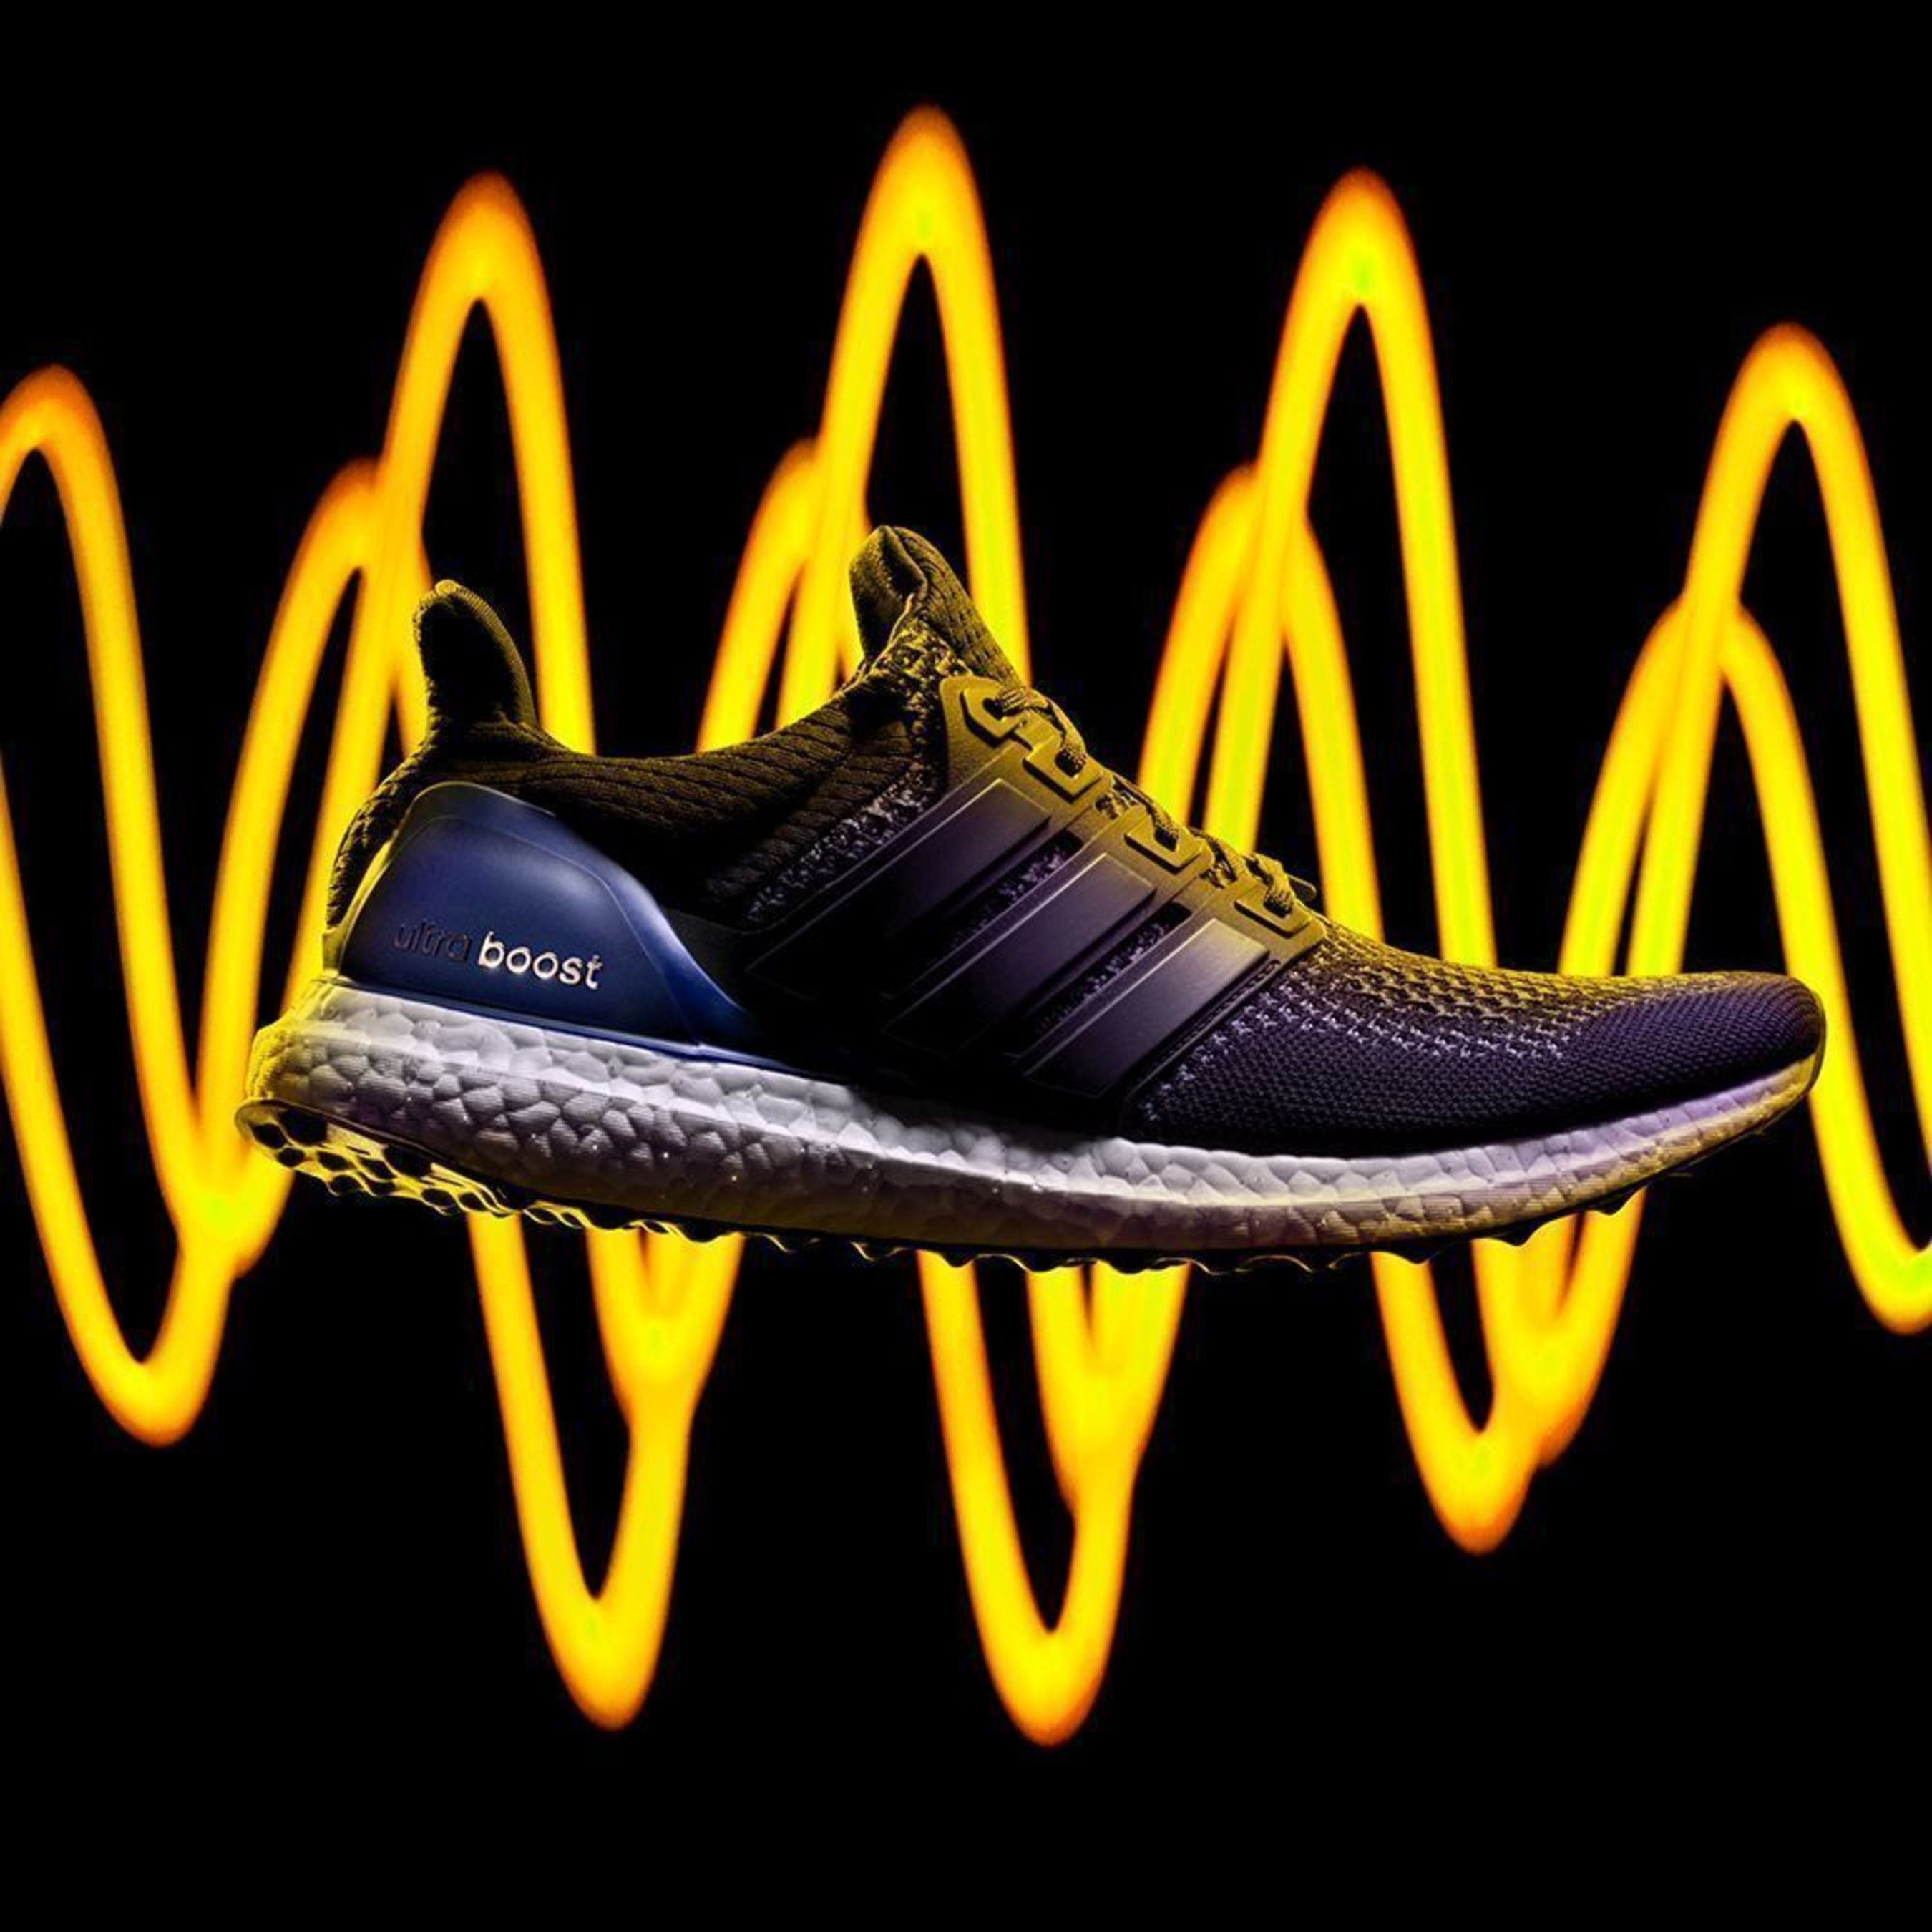 adidas unveils Ultra BOOST, the greatest running shoe ever. Join the revolution #ultraboost (PRNewsFoto/adidas)